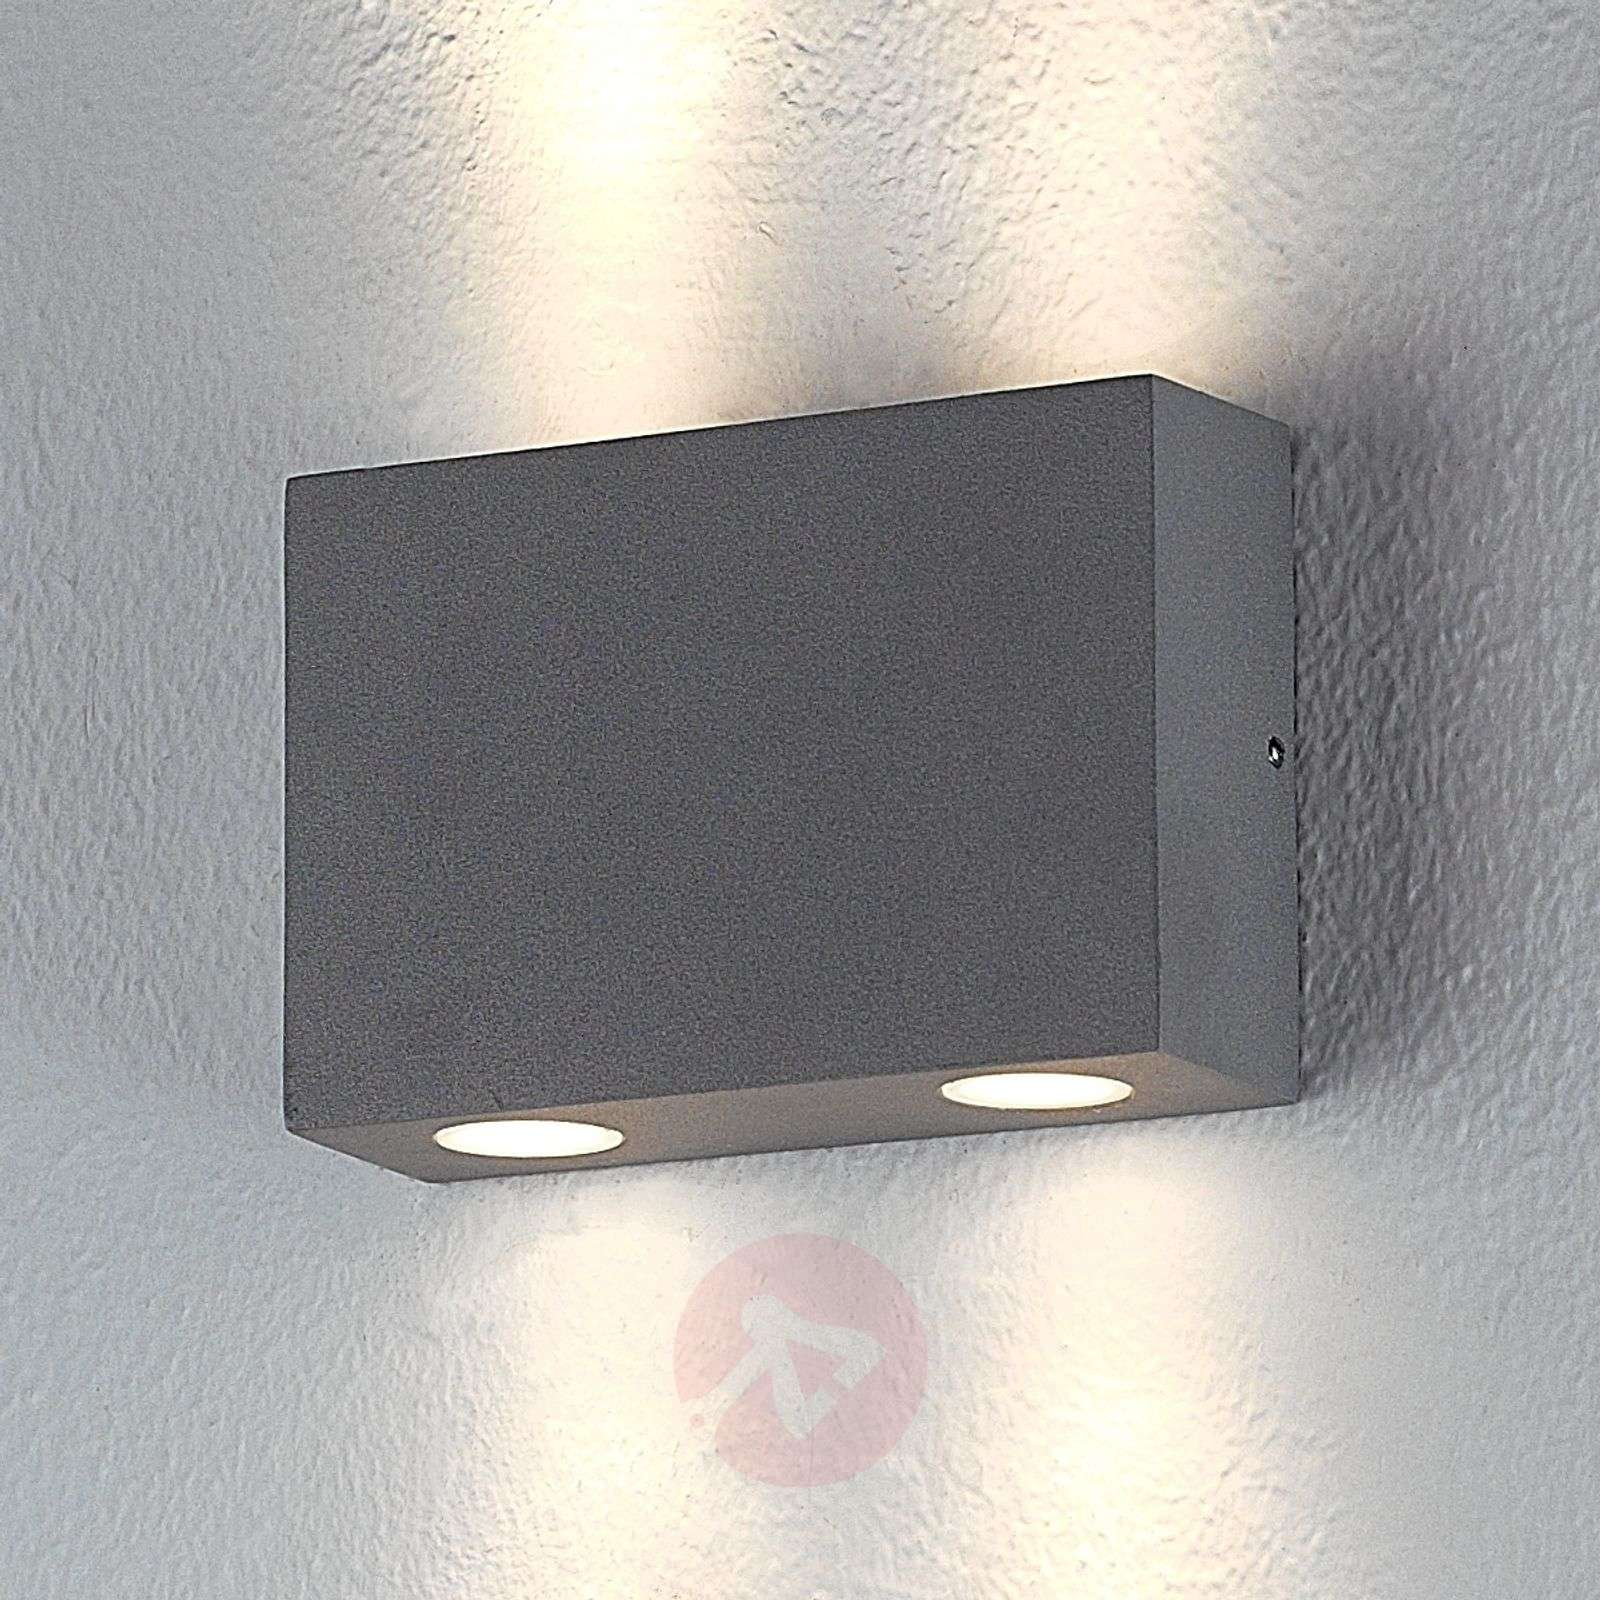 Moon Wall Light Remote Control : Rectangular outdoor wall light Henor with 4 LEDs Lights.co.uk